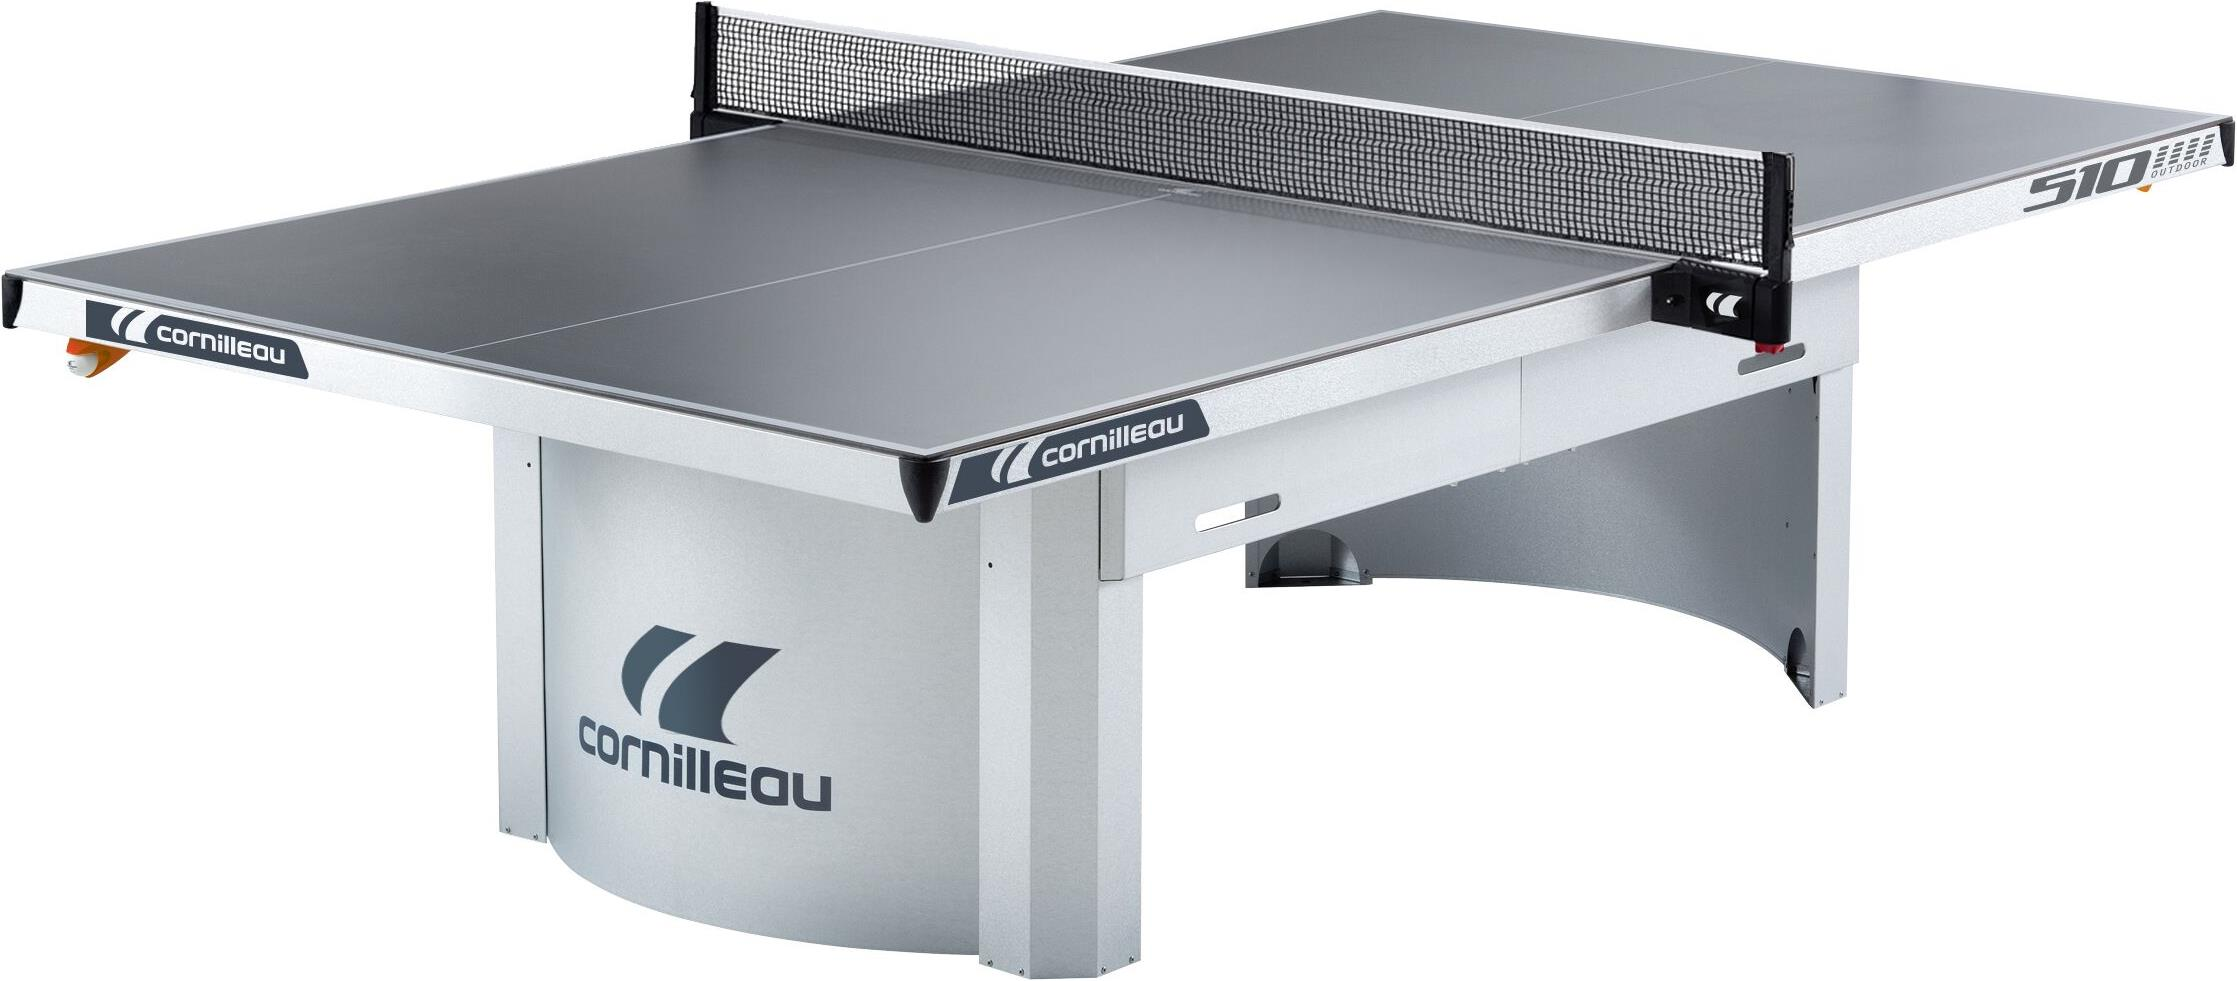 Table Tennis Tables Galaxus